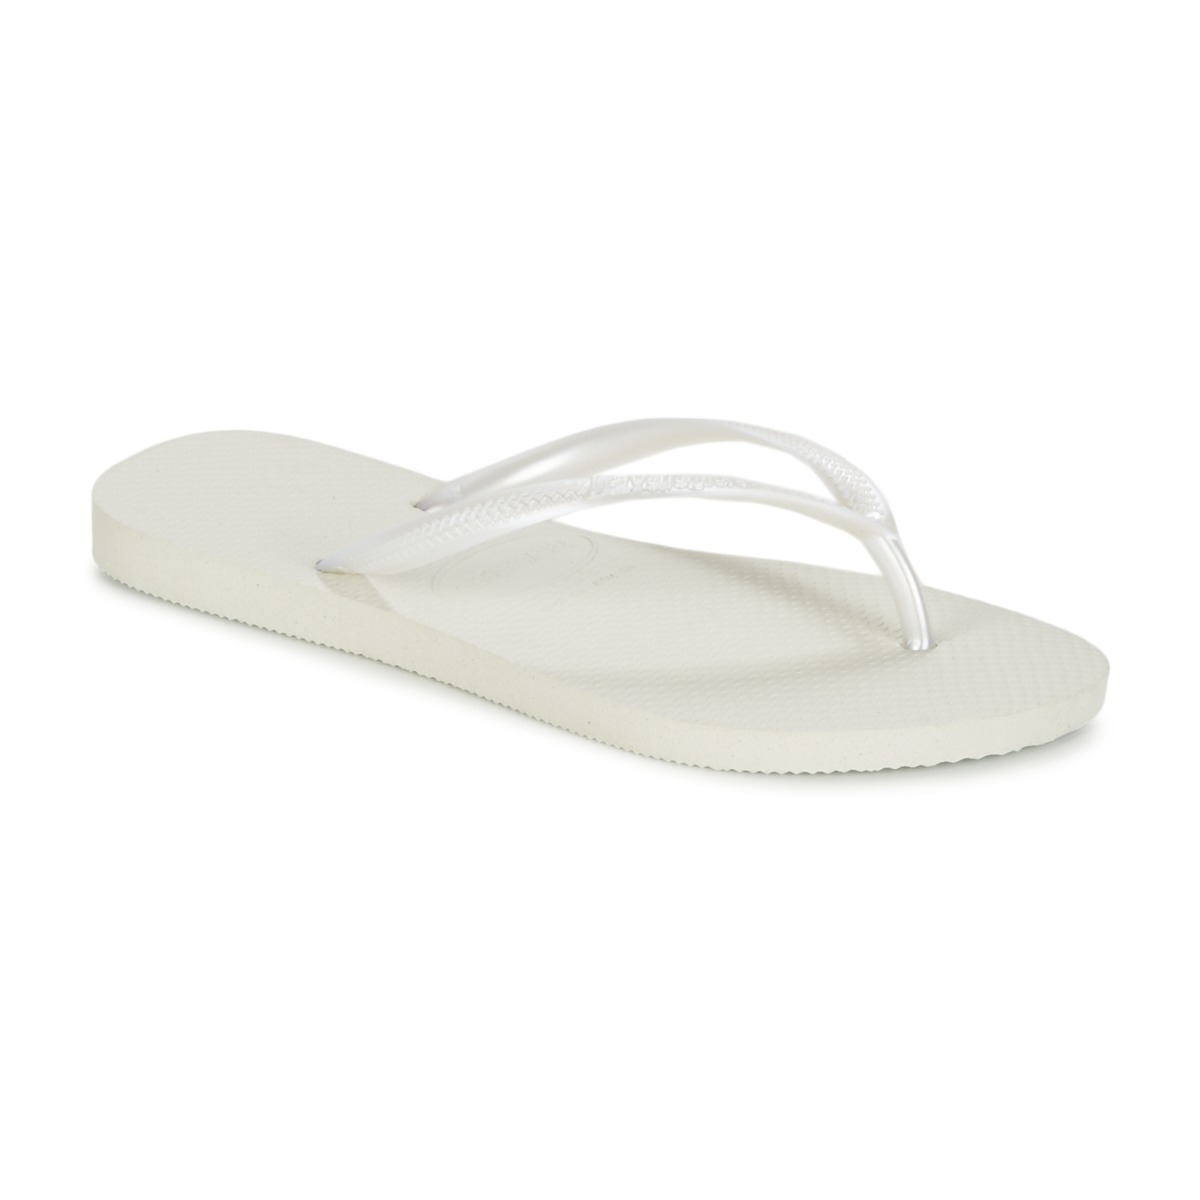 12fd3f42a55e87 Havaianas SLIM White - Fast delivery with Spartoo Europe ! - Shoes Flip  flops Women 26